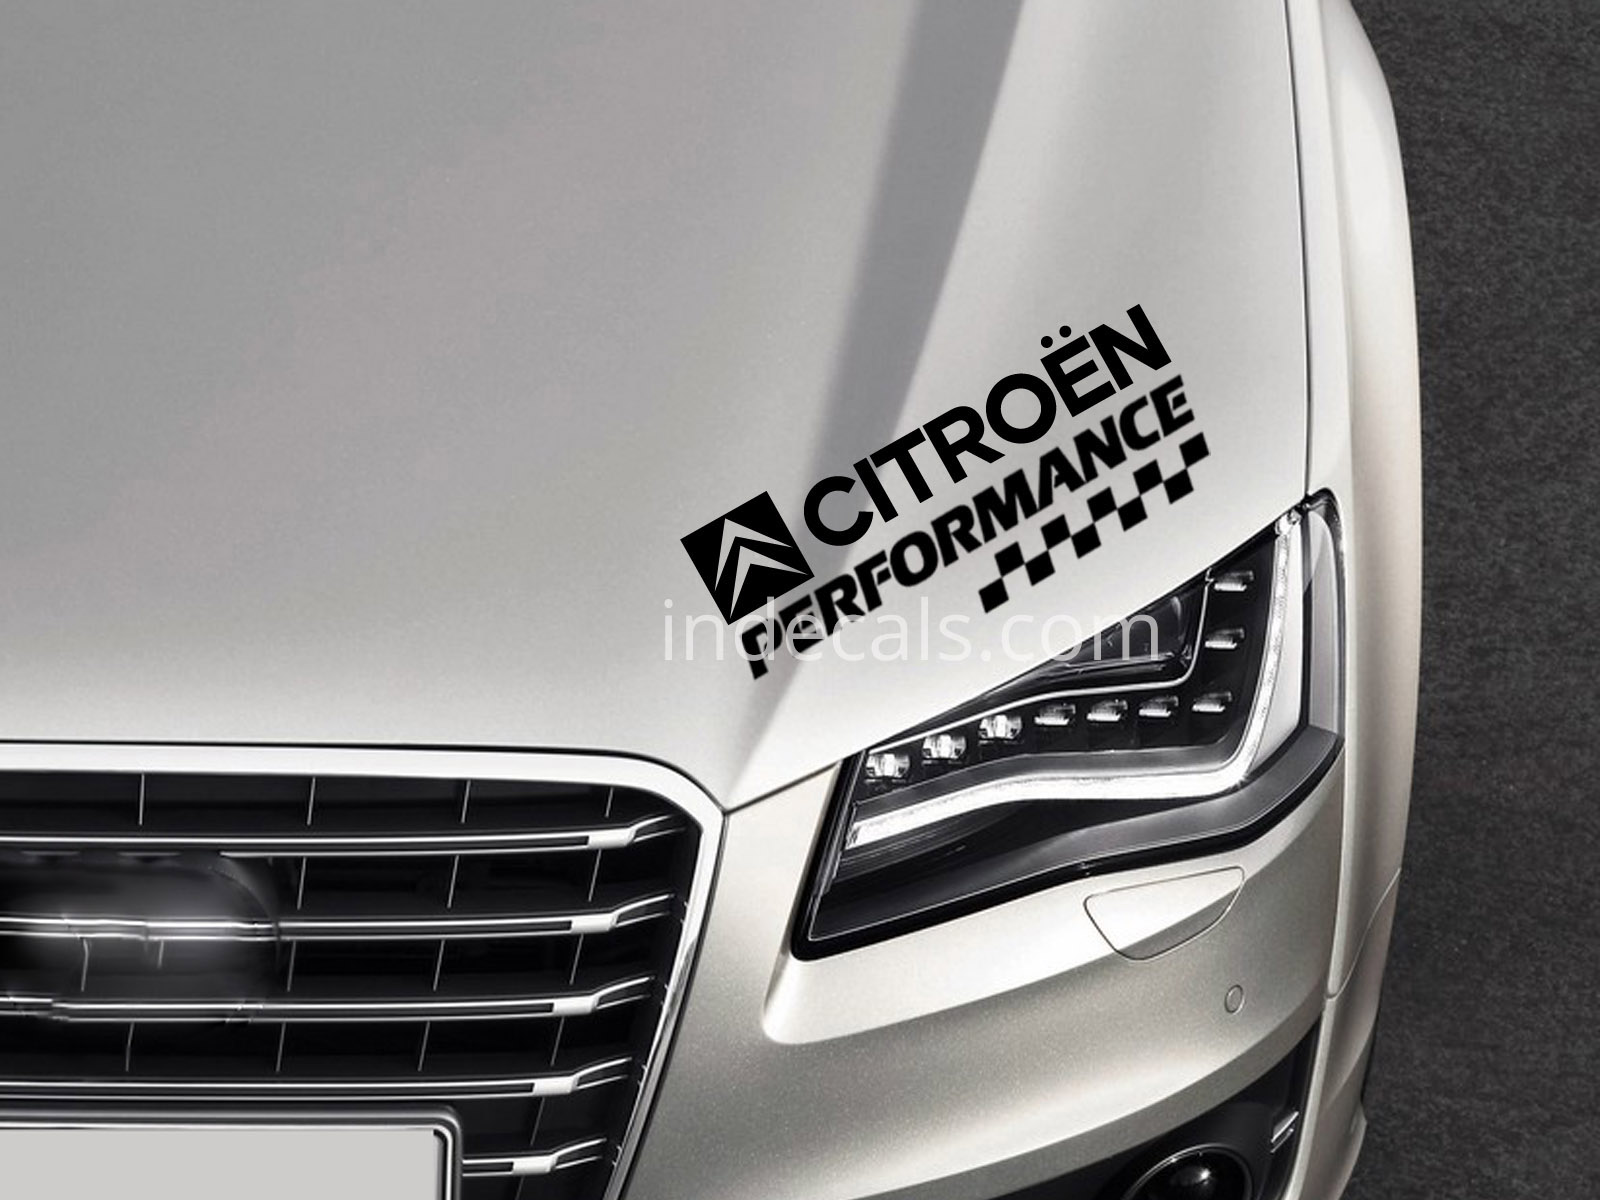 1 x Citroen Performance Sticker - Black